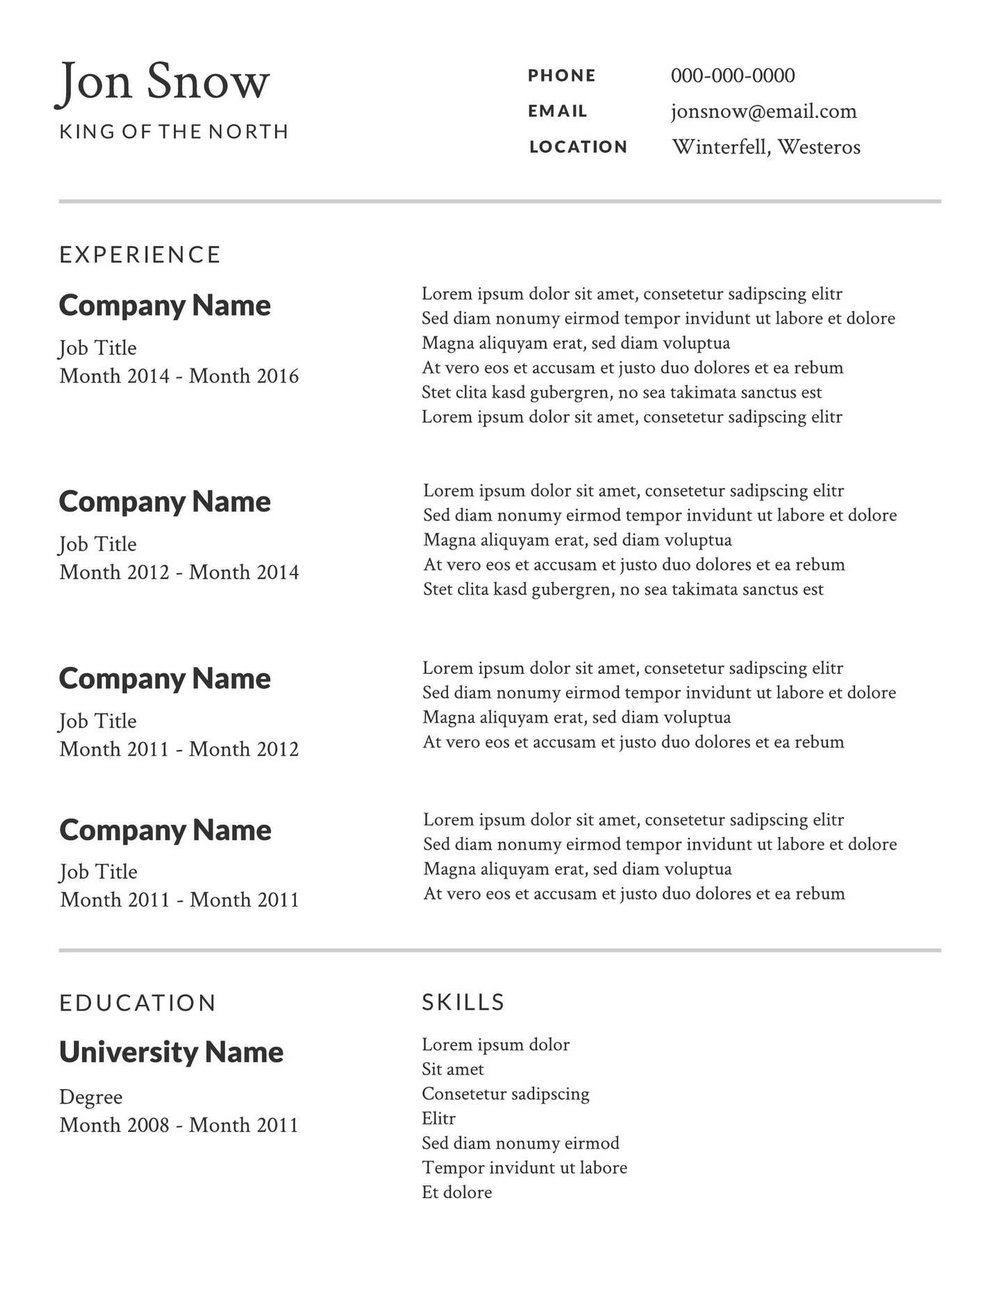 Cheap Resume Writing Services Reviews